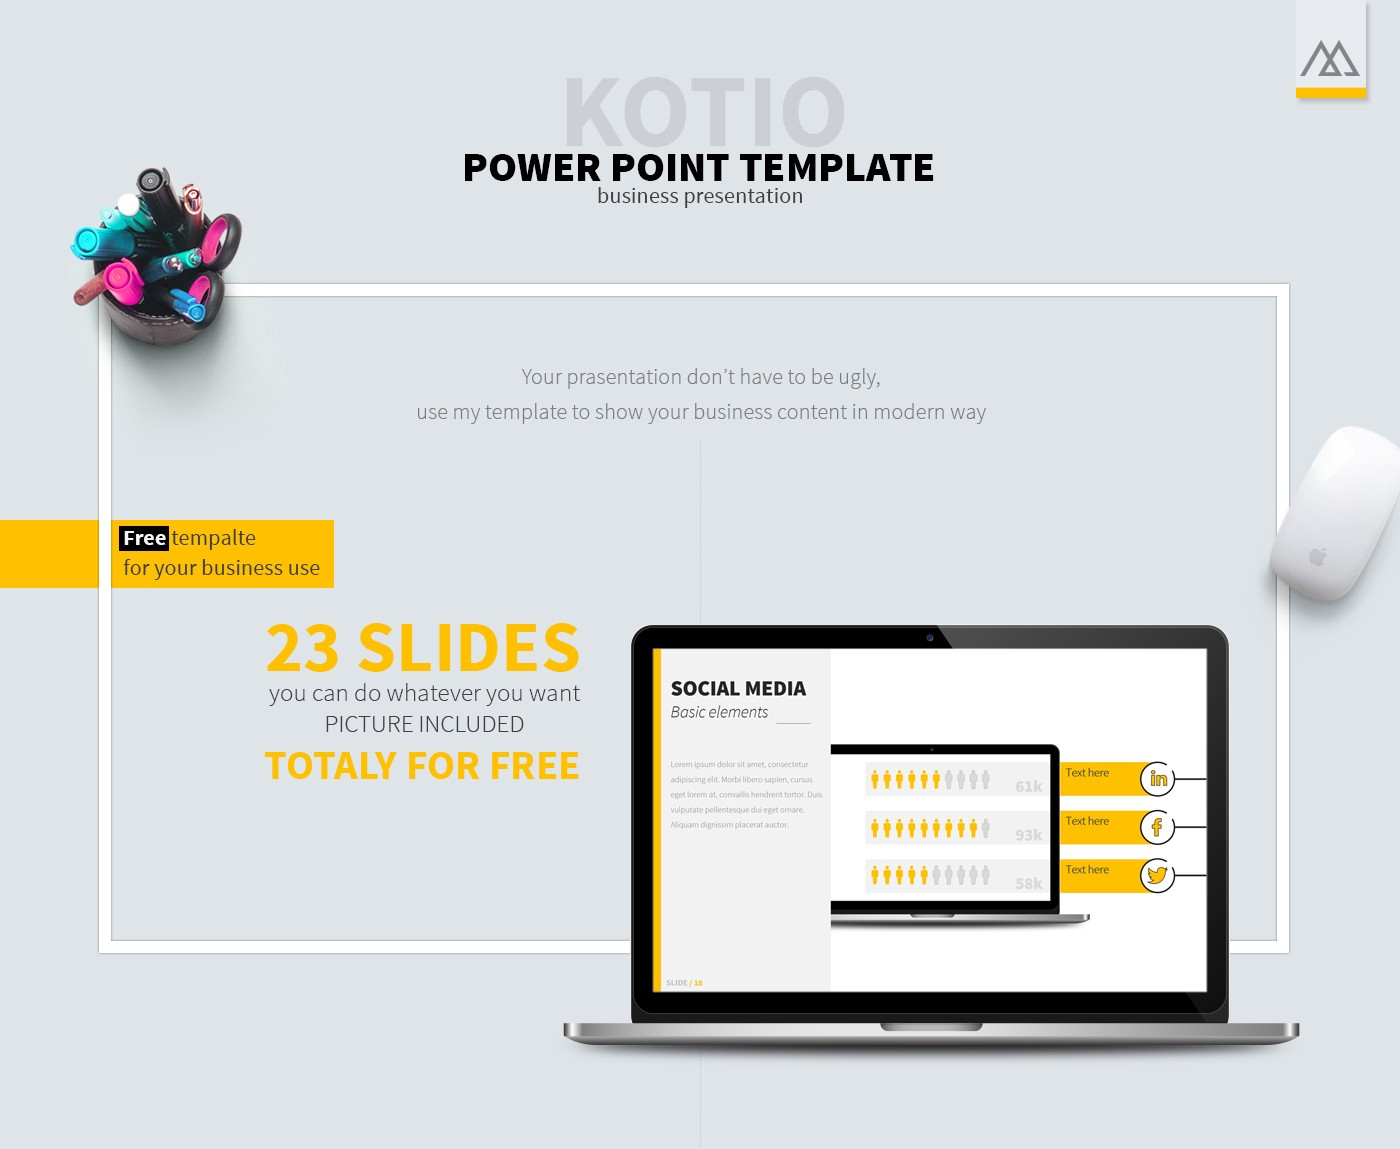 40 free cool powerpoint templates for presentations you can customize every slide to fit your presentation and its ready to use photos are easy to access therefore no time wasted download toneelgroepblik Image collections